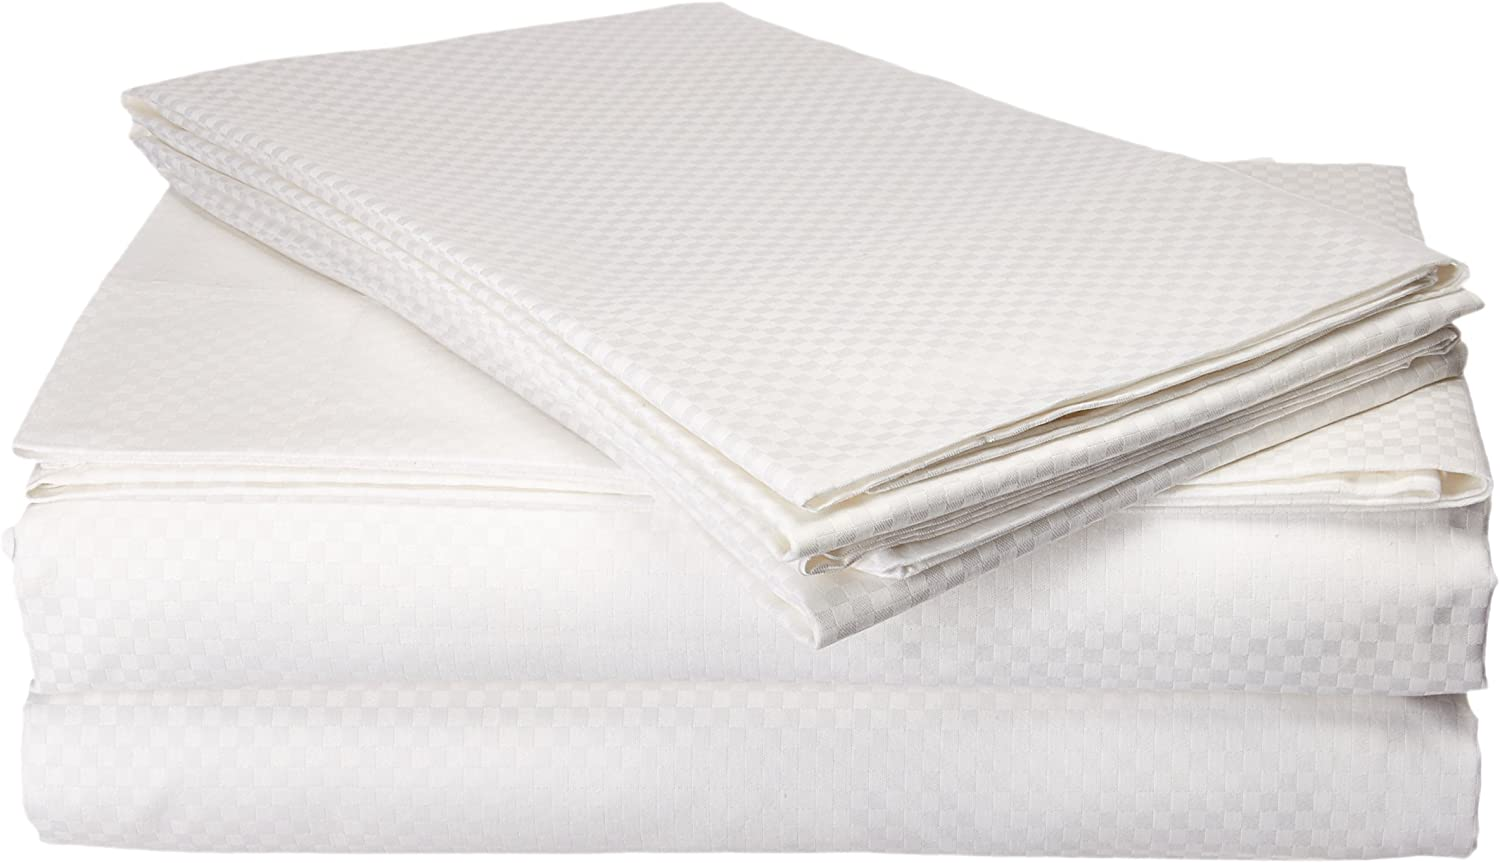 Natural Comfort Luxury Home 300 Count Low price Cotton Outlet SALE Thread 100-Percent